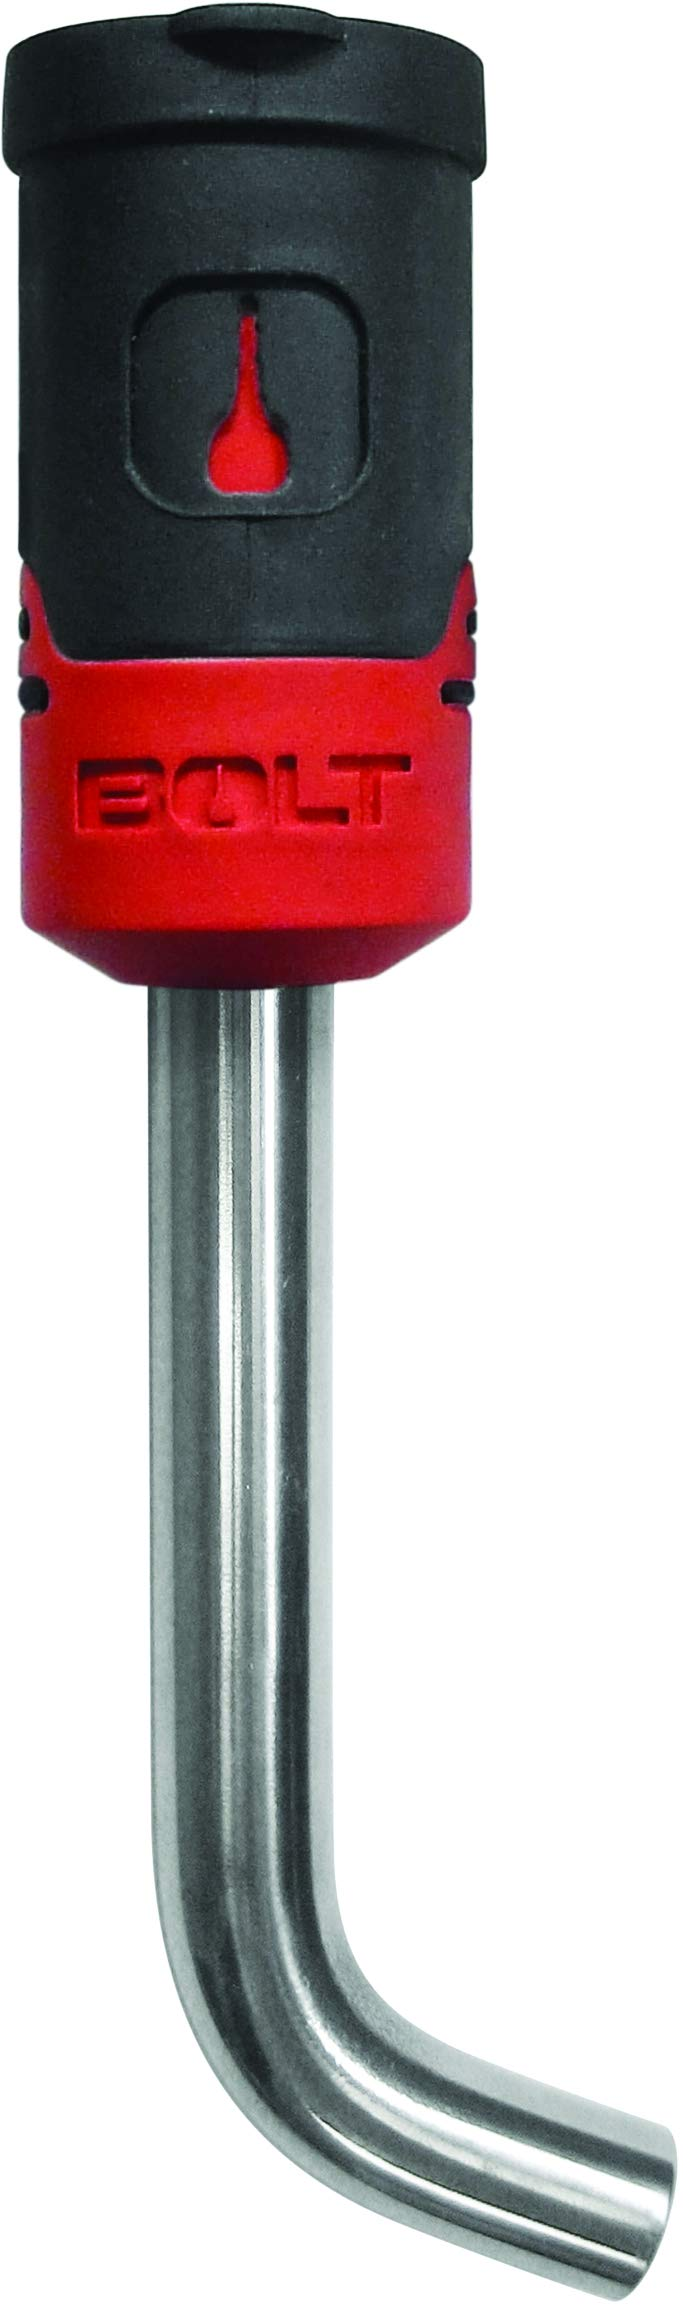 Bolt 7023582 5/8'' Receiver Lock for Chevrolet, GMC, Buick and Cadillac Center Cut Keys